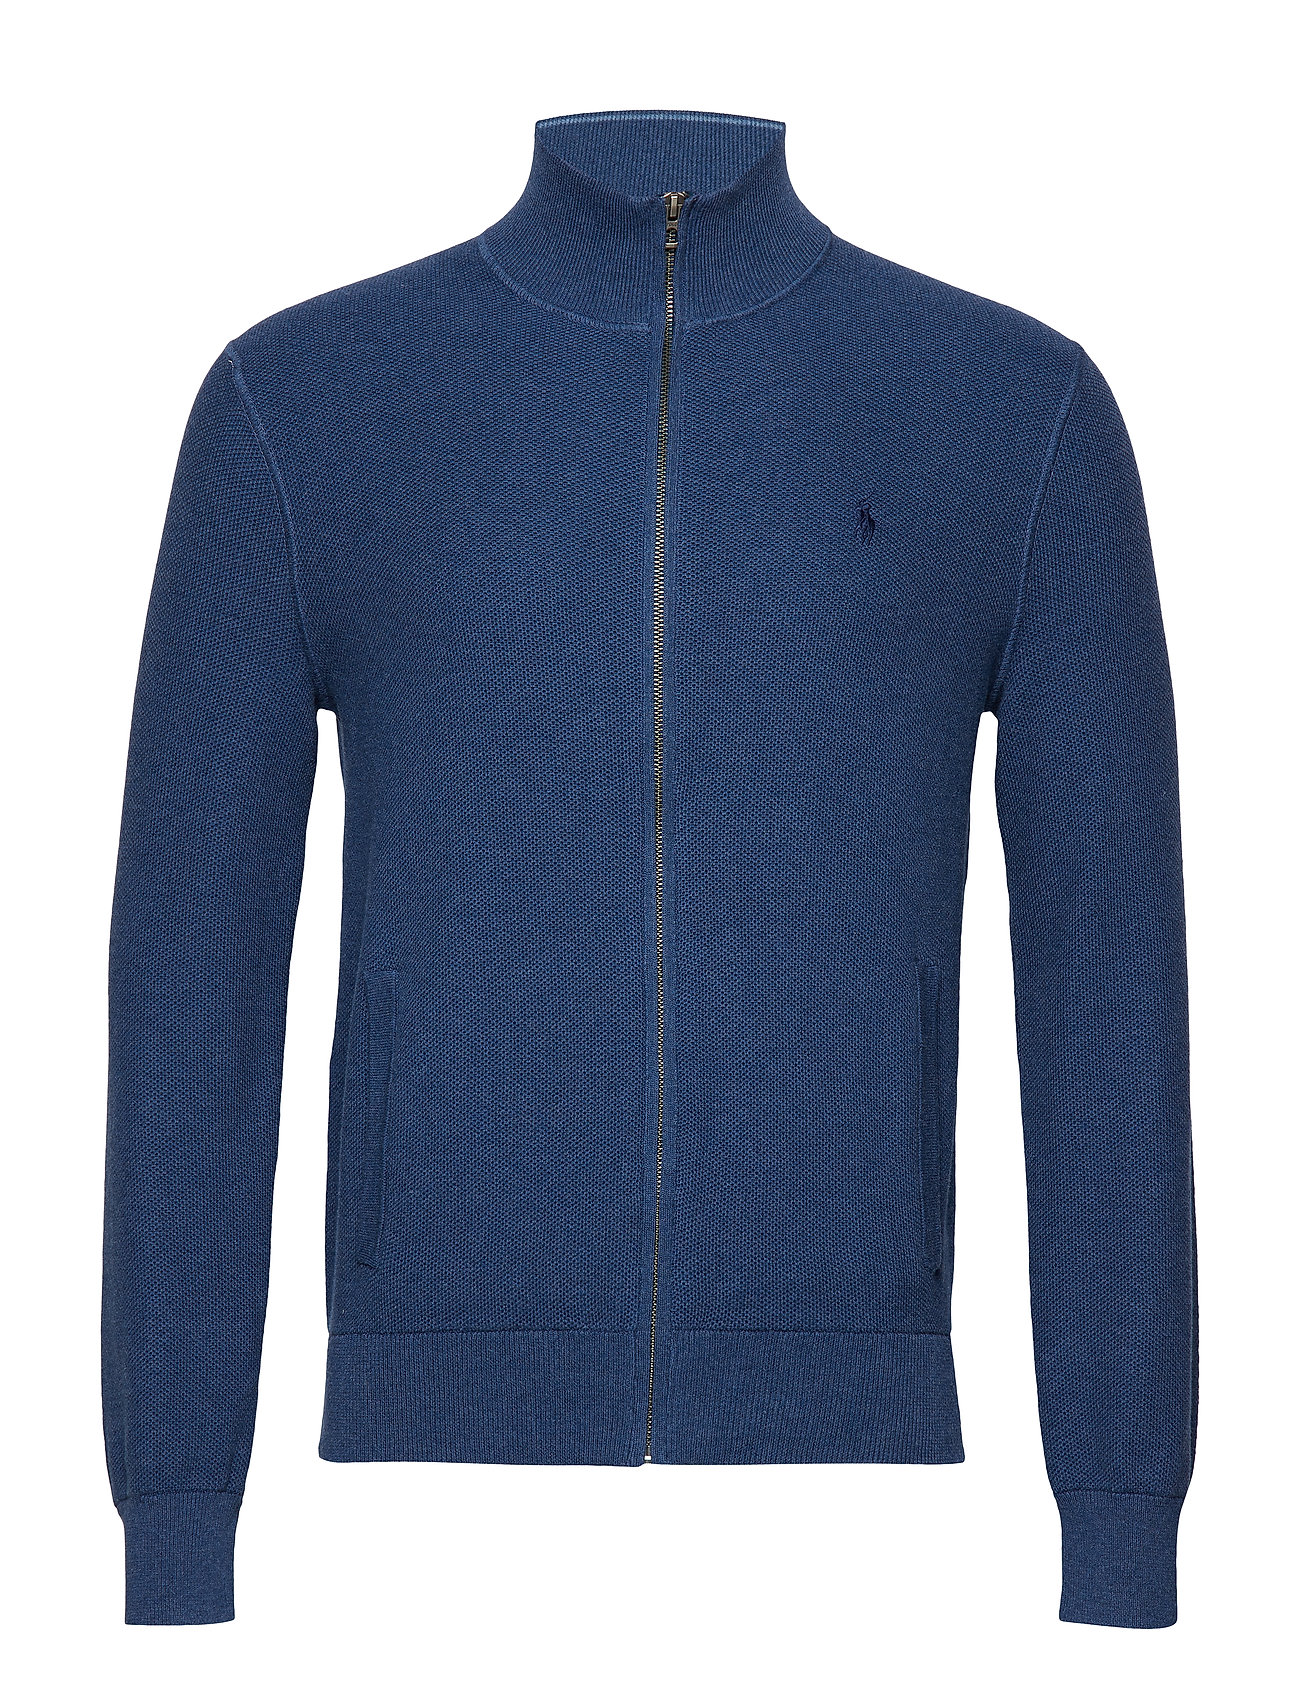 Polo Ralph Lauren Cotton Full-Zip Sweater - INDIGO HEATHER